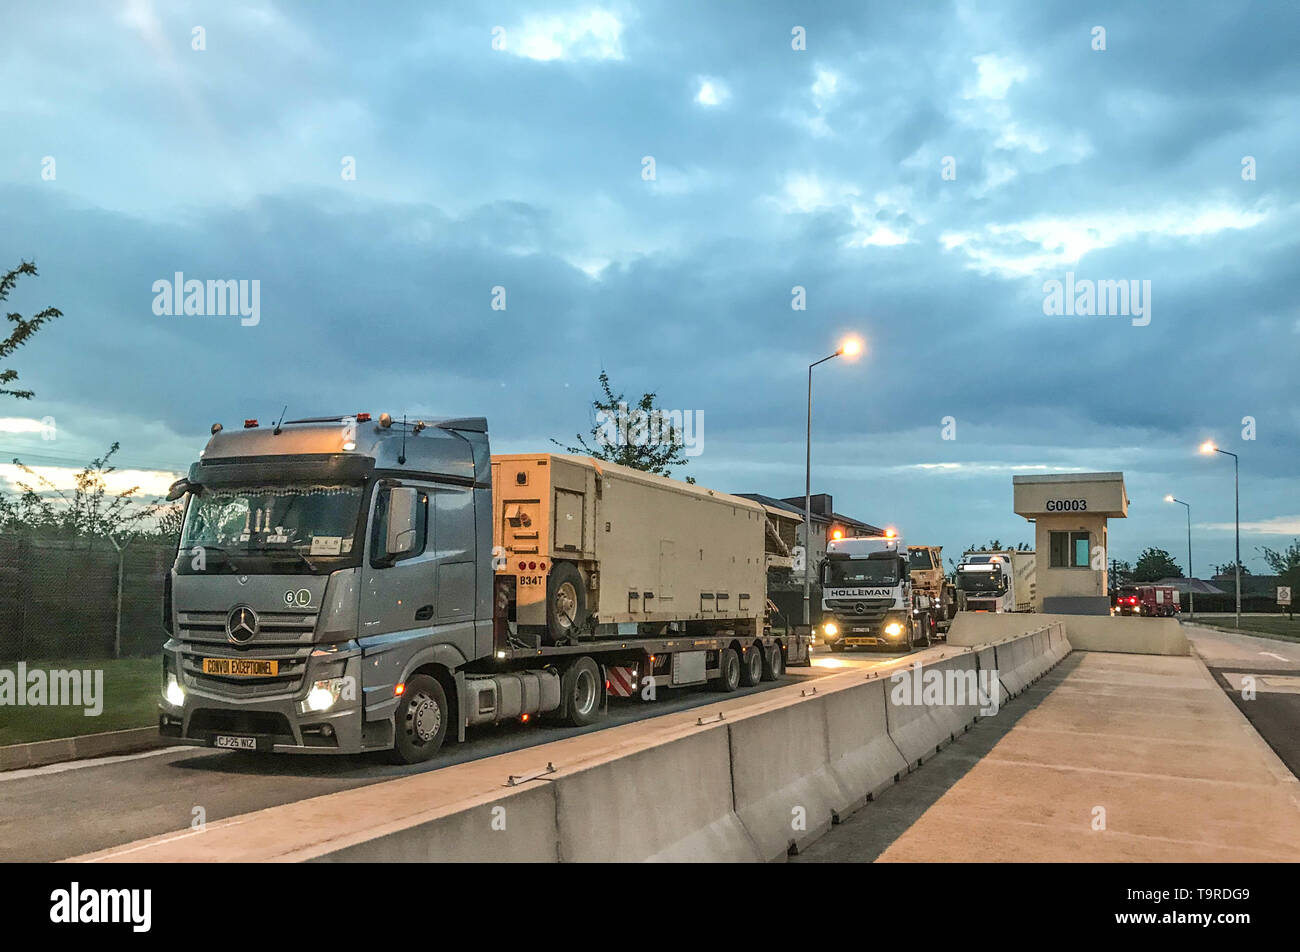 MIHAIL KOGALNICEANU (MK) AIR BASE, ROMANIA – A convoy of Romanian trucks carrying a Terminal High Altitude Area Defense (THAAD) interceptor system leave Mihail Kogalniceanu (MK) Air Base, Romania, in route to Naval Support Facility Deveselu, Romania May 10. The 400-kilometer convoy was the longest the THAAD system has traveled on road outside of the continental U.S. The deployment of the THAAD is in support of the NATO Ballistic Missile Defense mission and reinforces the strong and unremitting U.S. commitment to the defense of our NATO allies. (Photo by U.S. Army Master Sgt. James Redd, 174th  - Stock Image